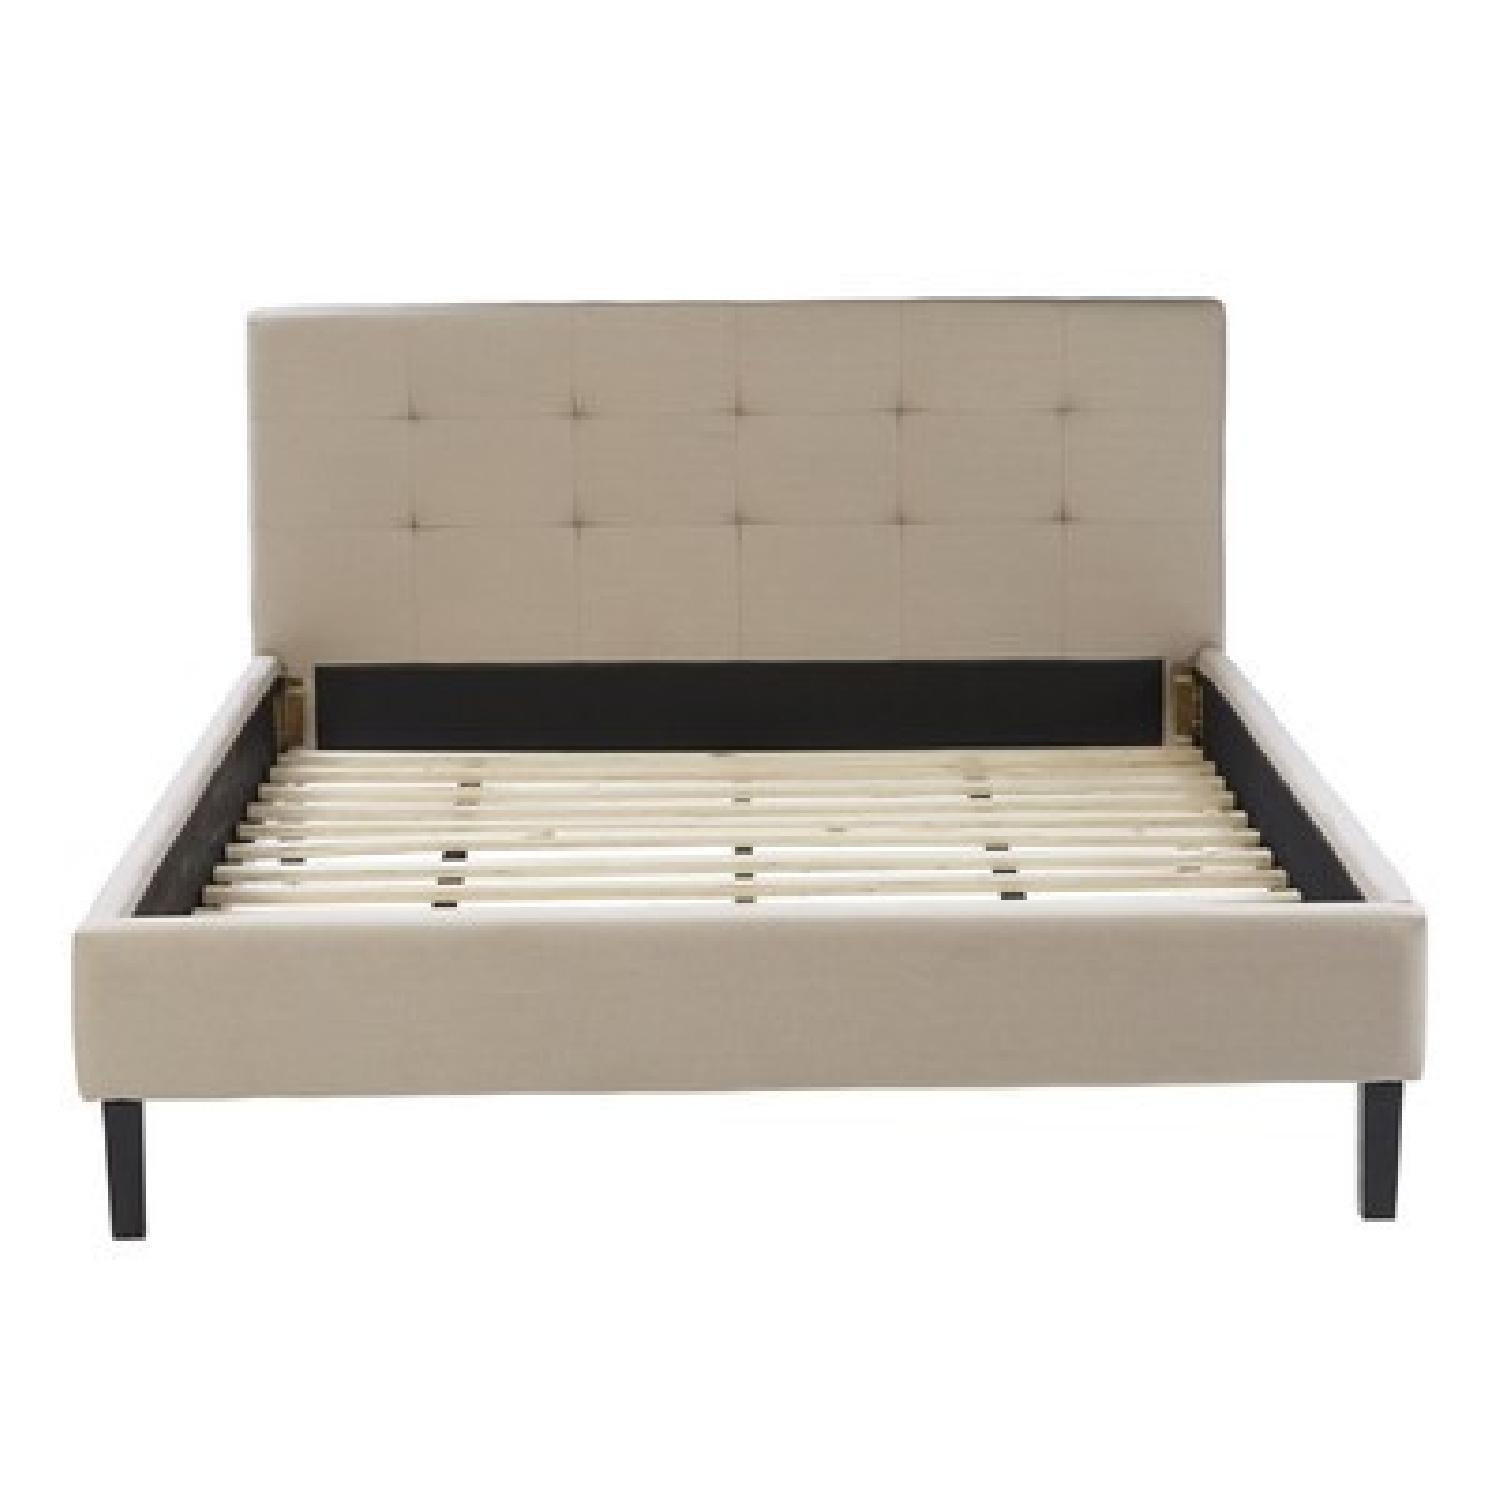 Queen Bed Frame w/ Linen Upholstered Tufted Headboard in Natural Oatmeal - image-0